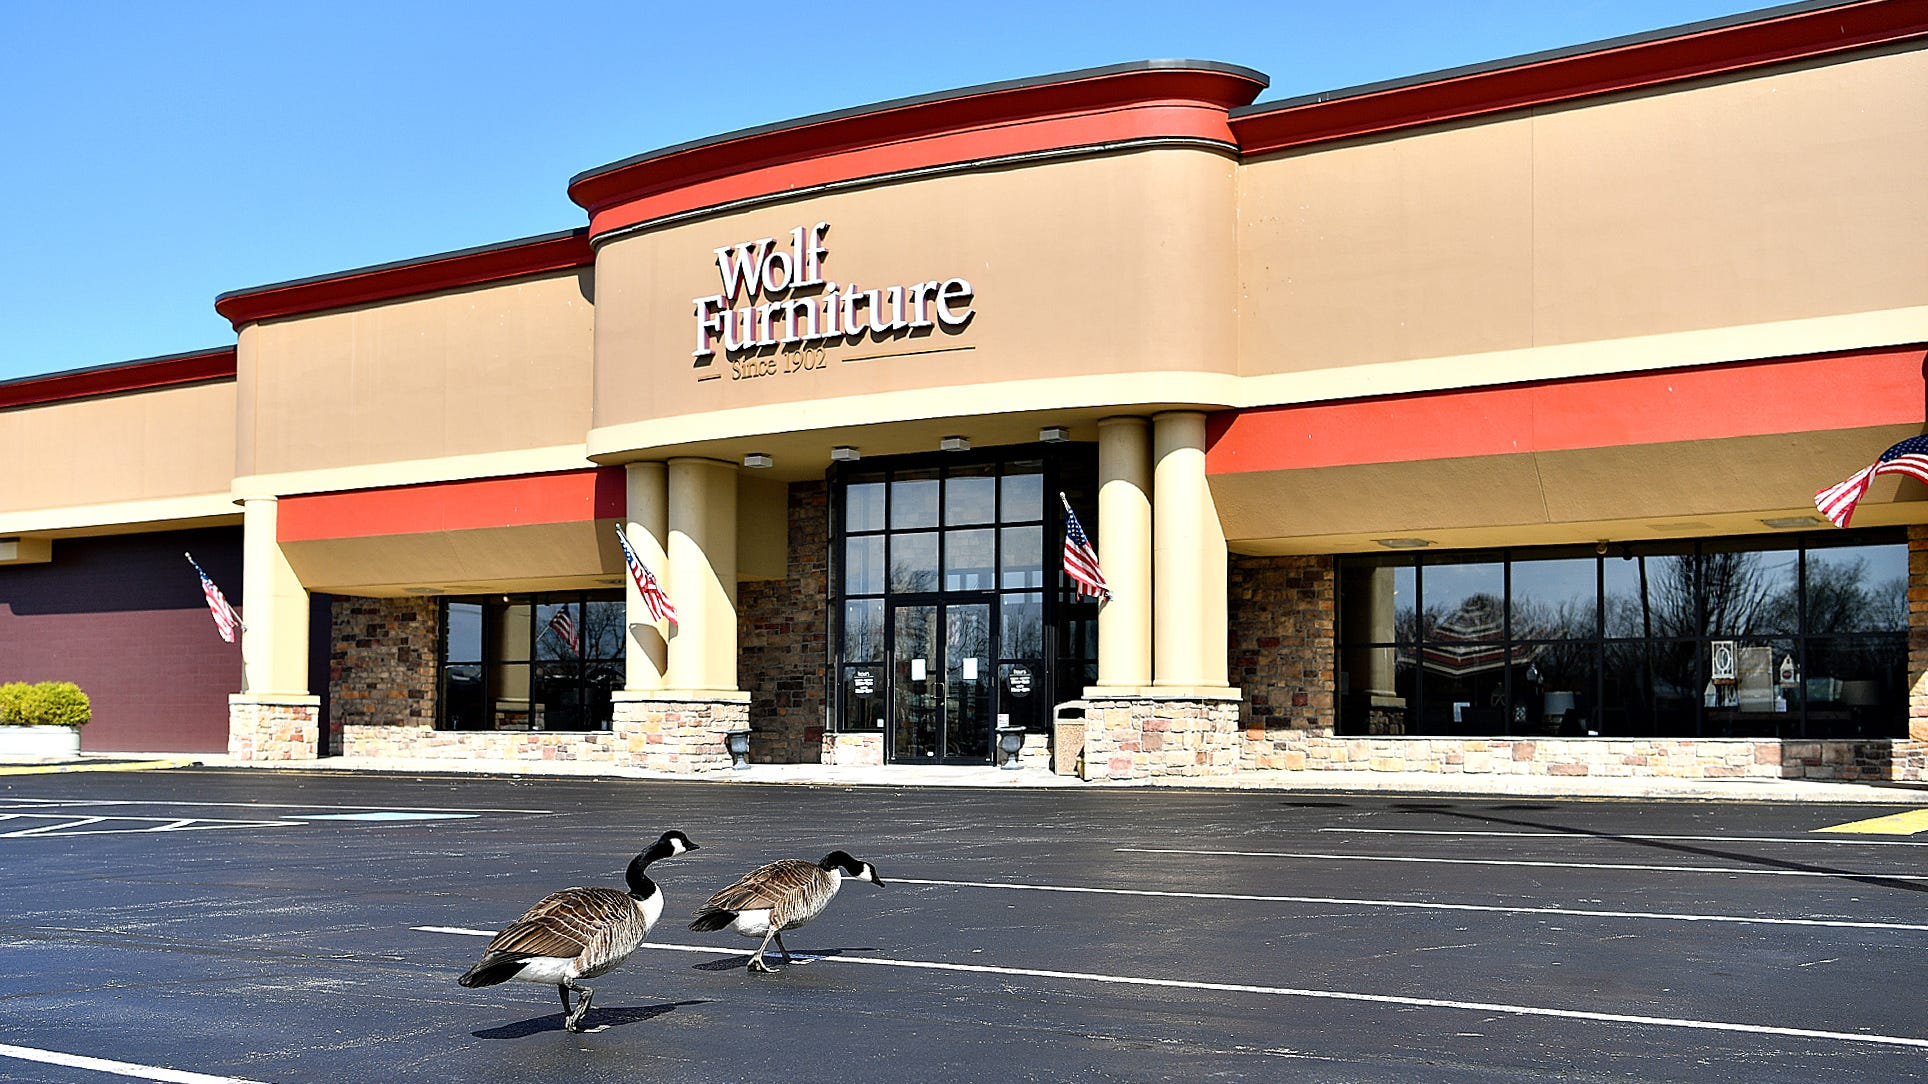 Wolf Furniture stores closing; owner nixes deal due to coronavirus